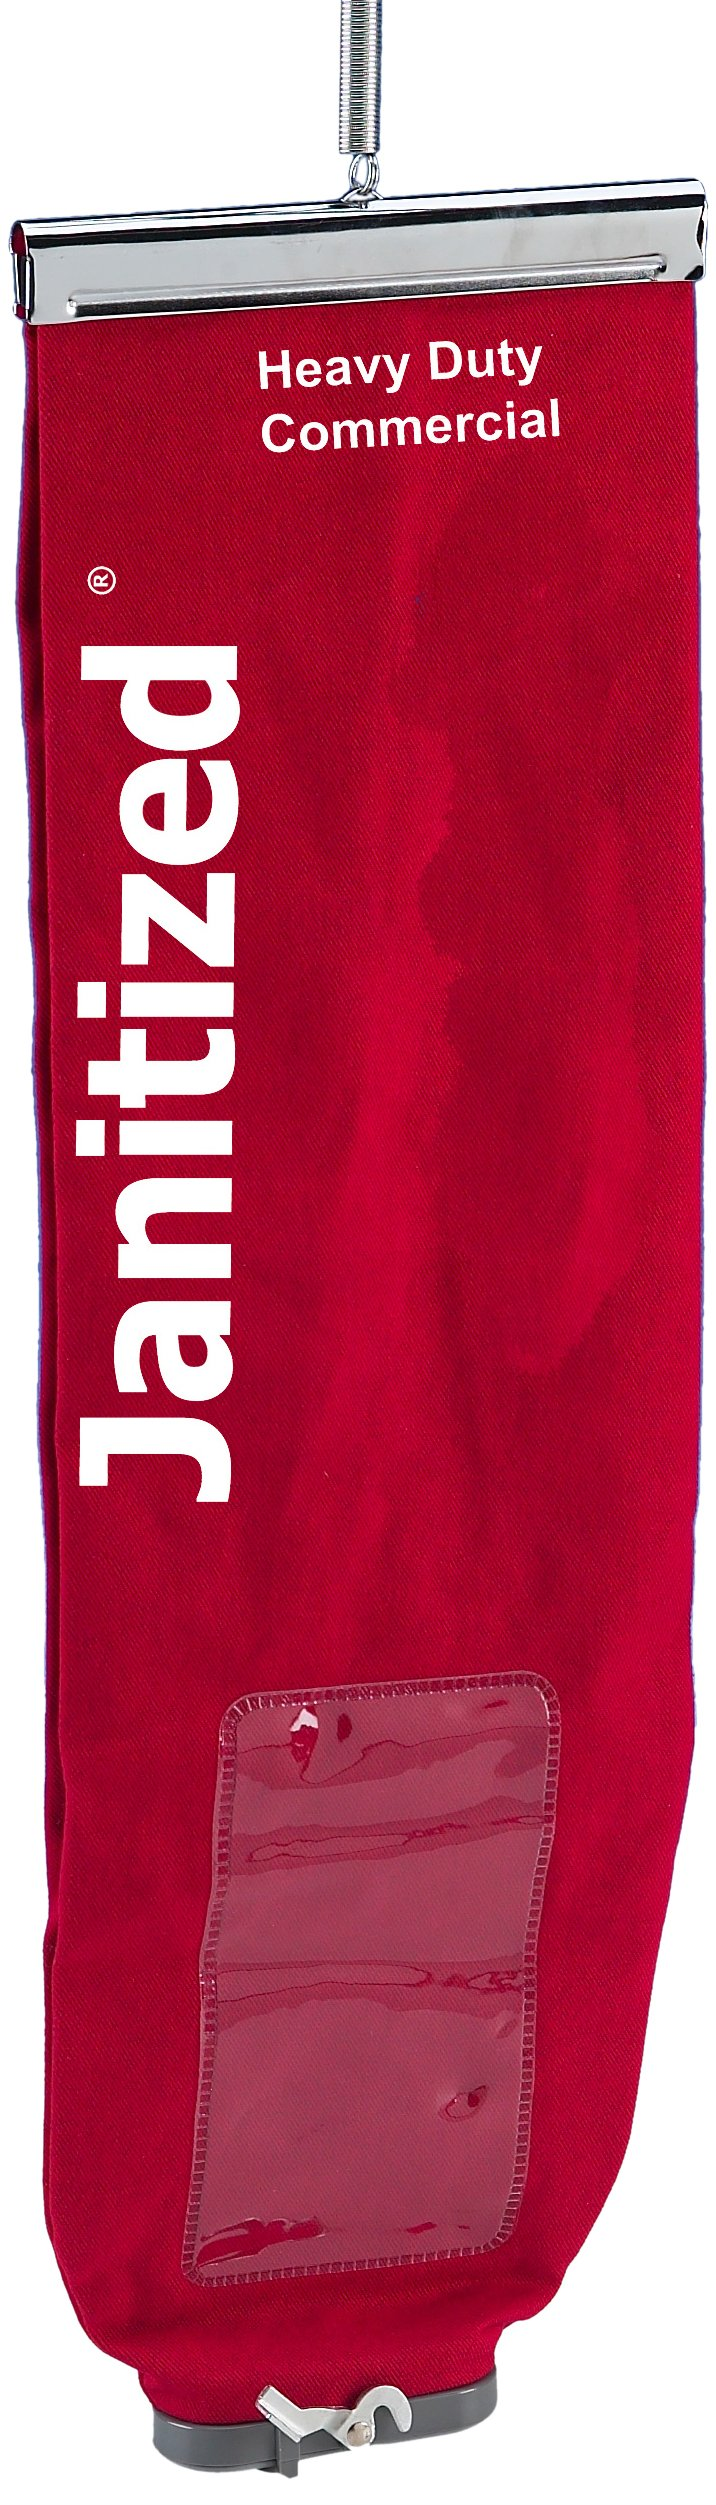 Janitized JAN-IVF167-CNSMS-RD Premium Replacement Commercial Vacuum Filter, For Clarke, Eureka/Sanitaire, Euroclean and Nilfisk ReliaVac Lined Red Cloth Bag with Lock Top Load (Case of 25)